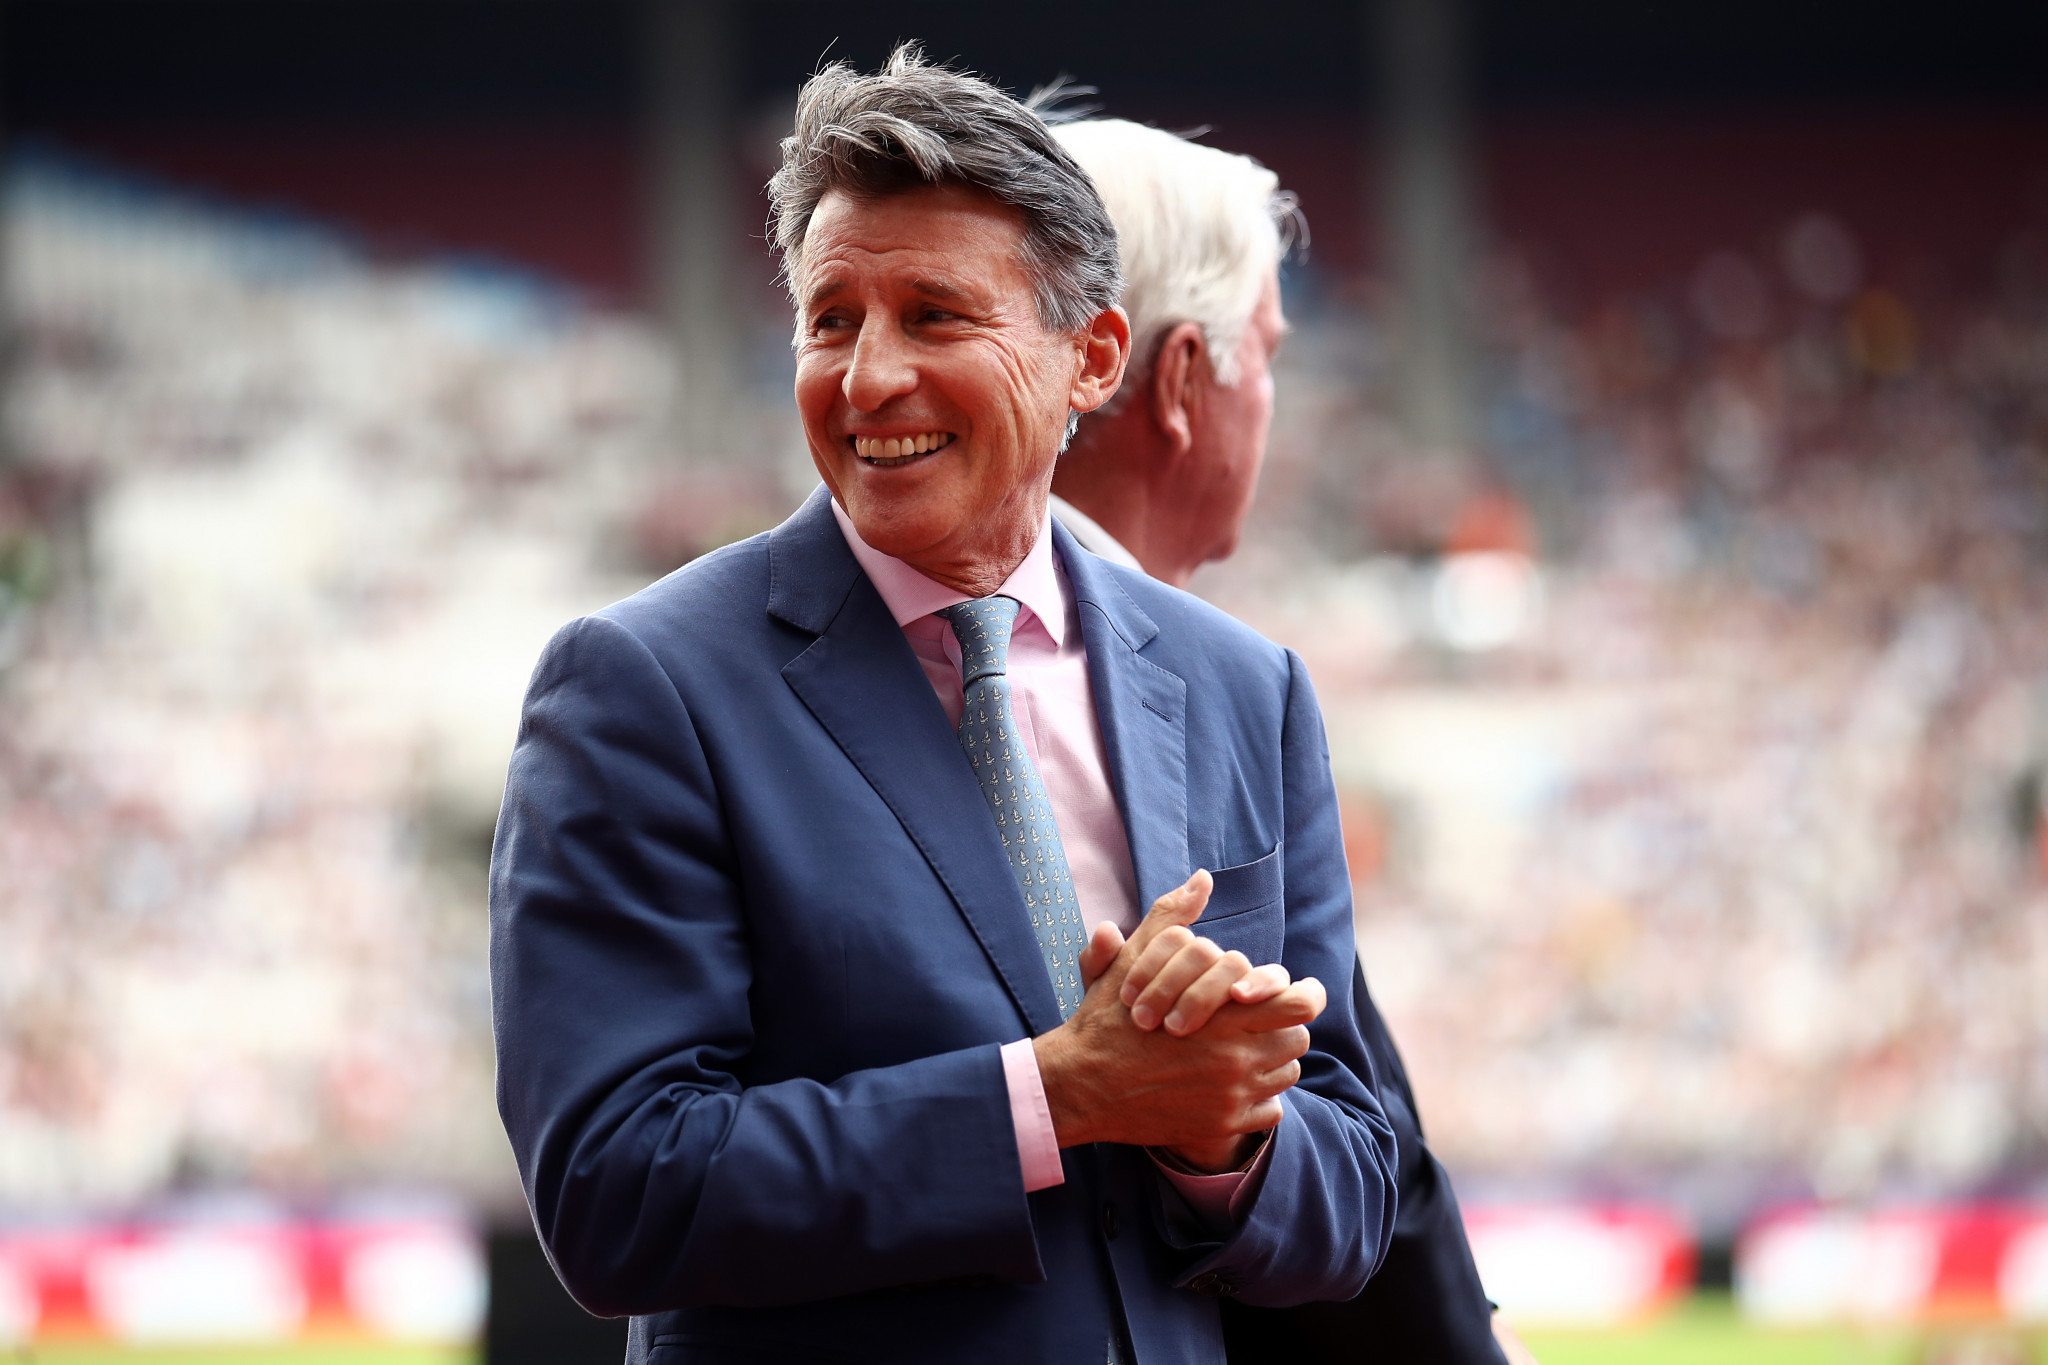 Coe to be re-elected IAAF President unopposed it is confirmed but record numbers standing for other positions